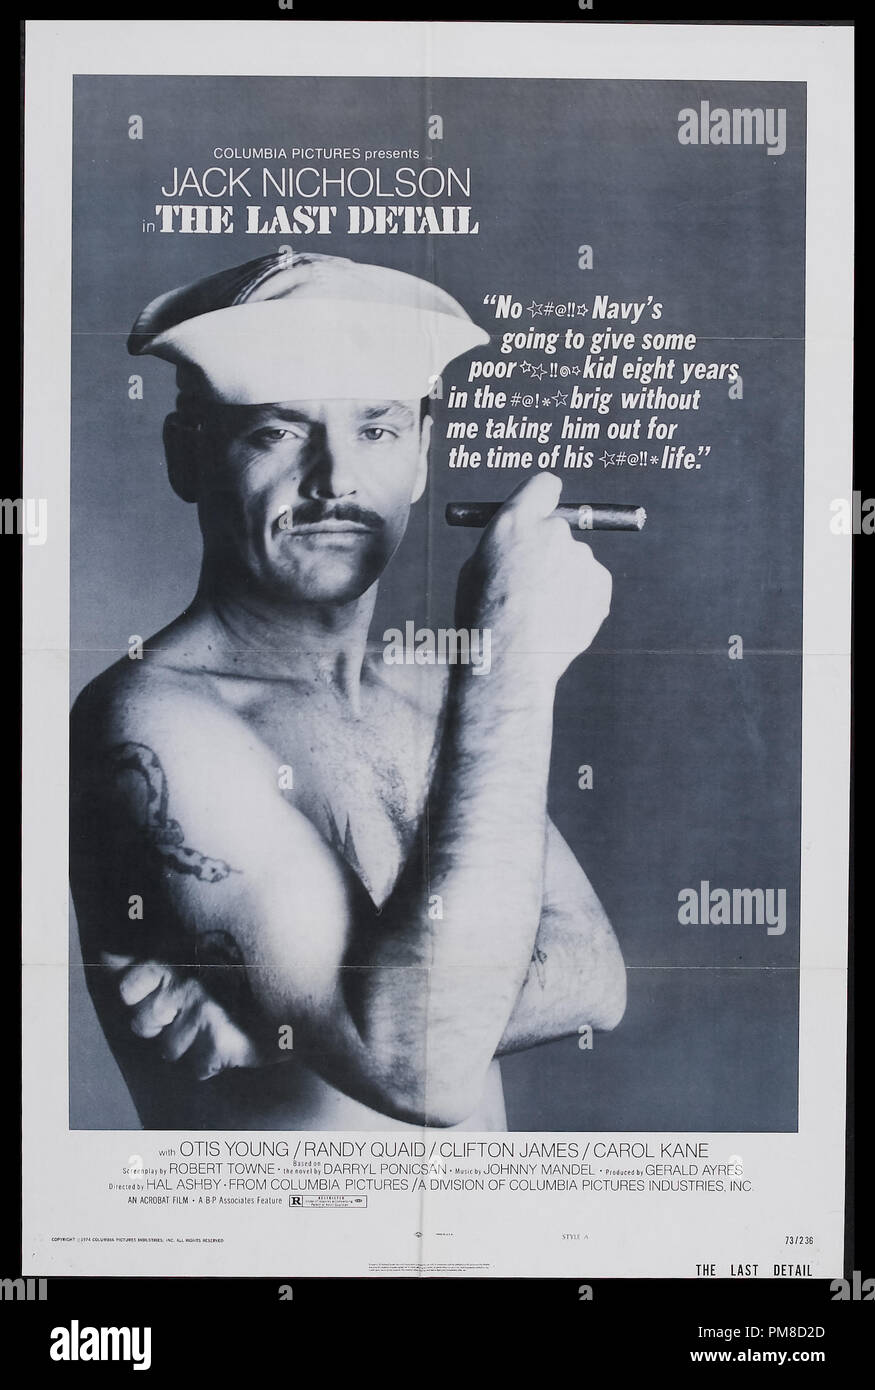 Jack Nicholson, 'The Last Detail' 1973 Columbia Pictures    File Reference # 31955_226THA - Stock Image